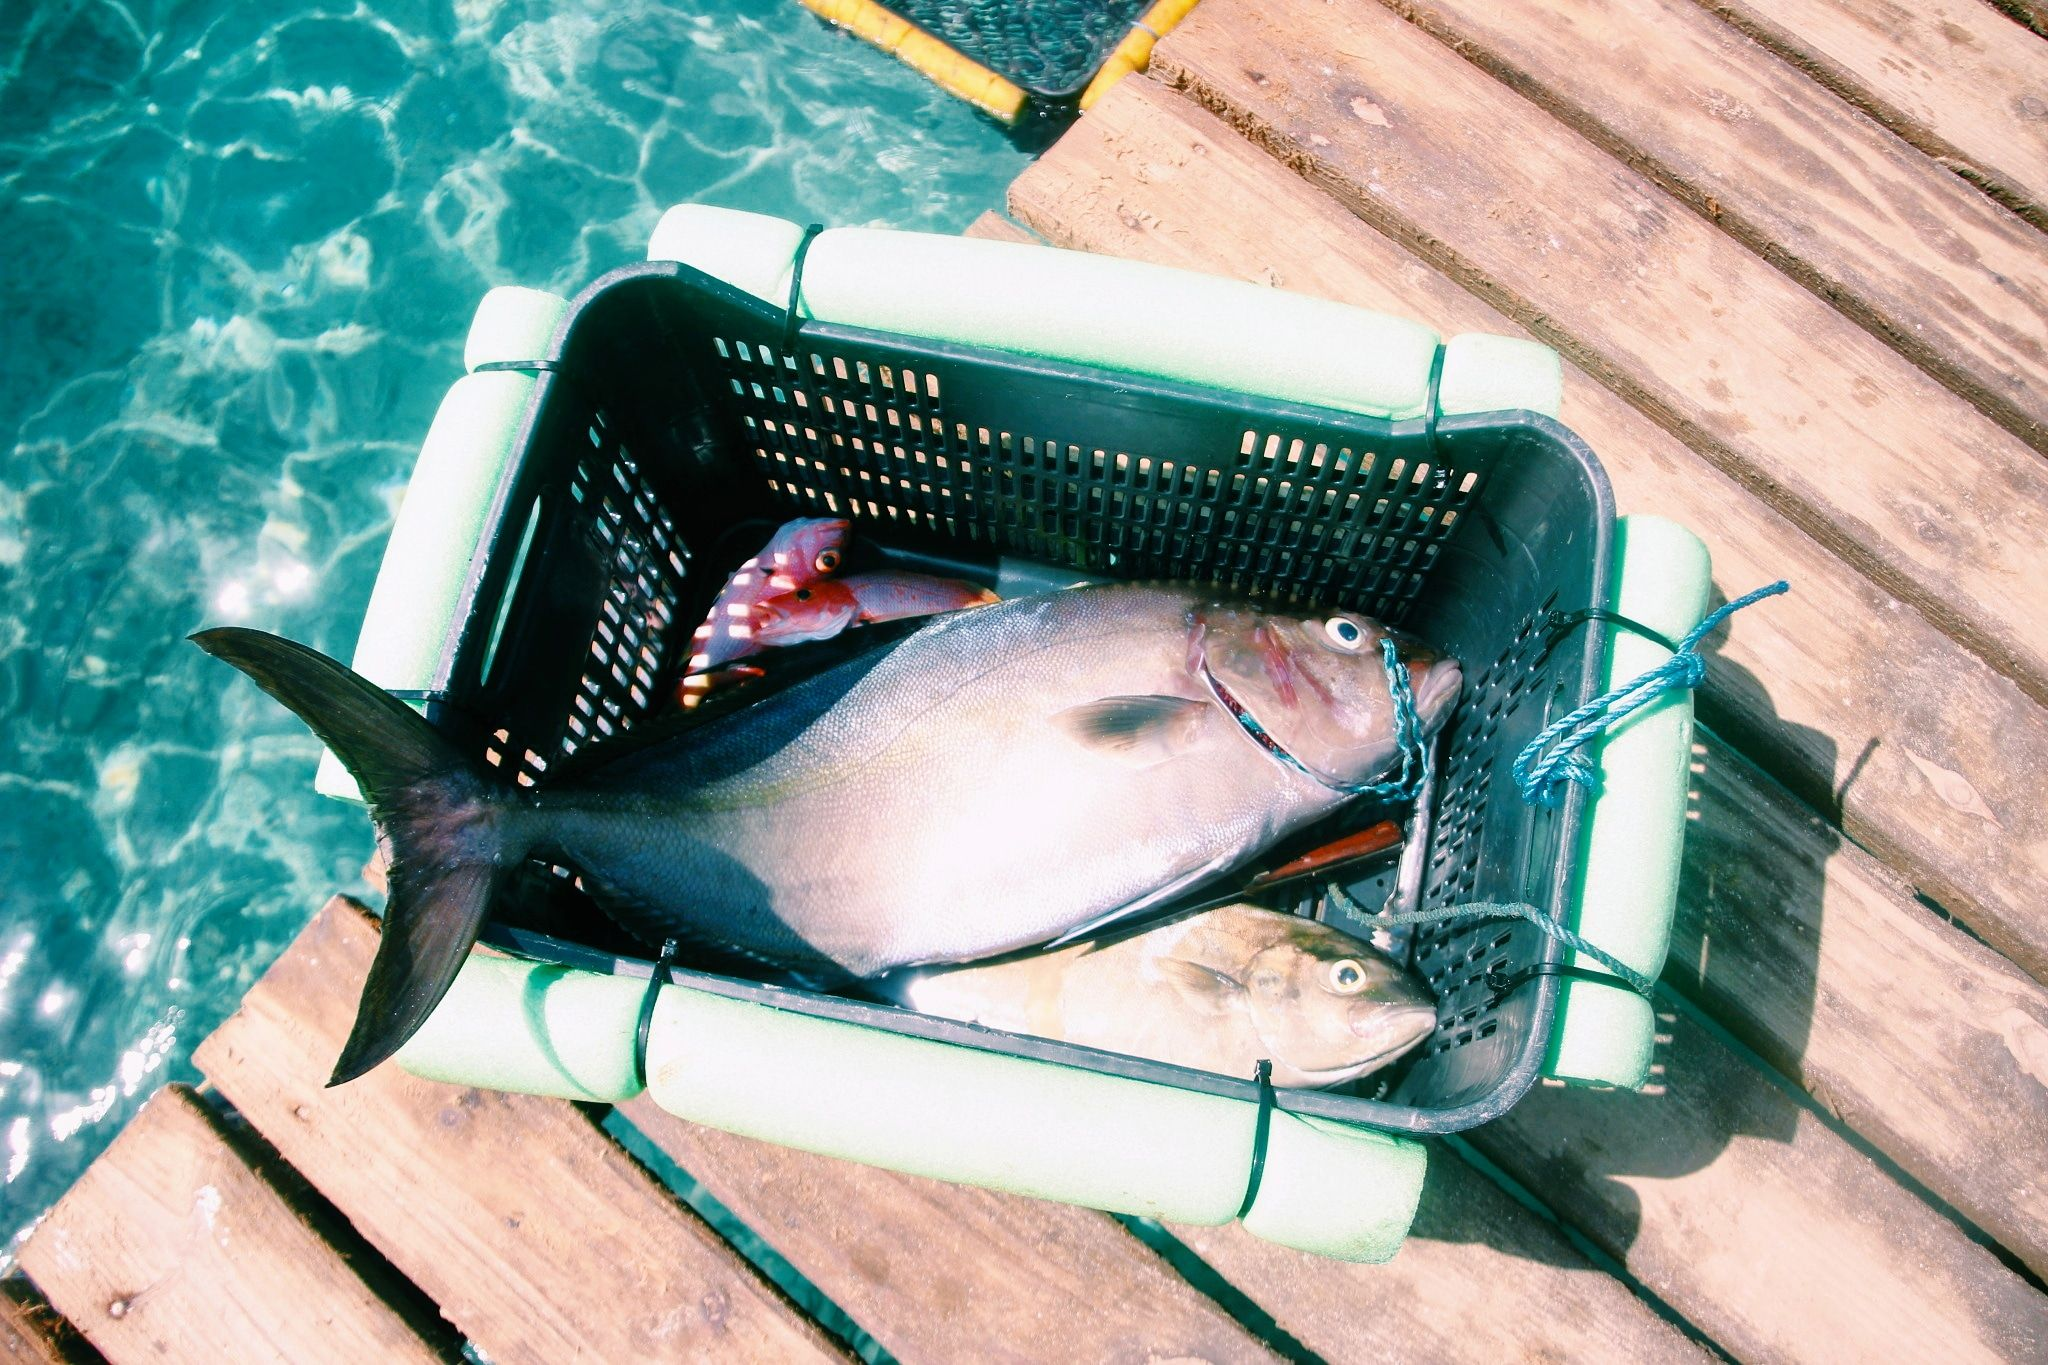 Catch of the day at the snorkeling beach